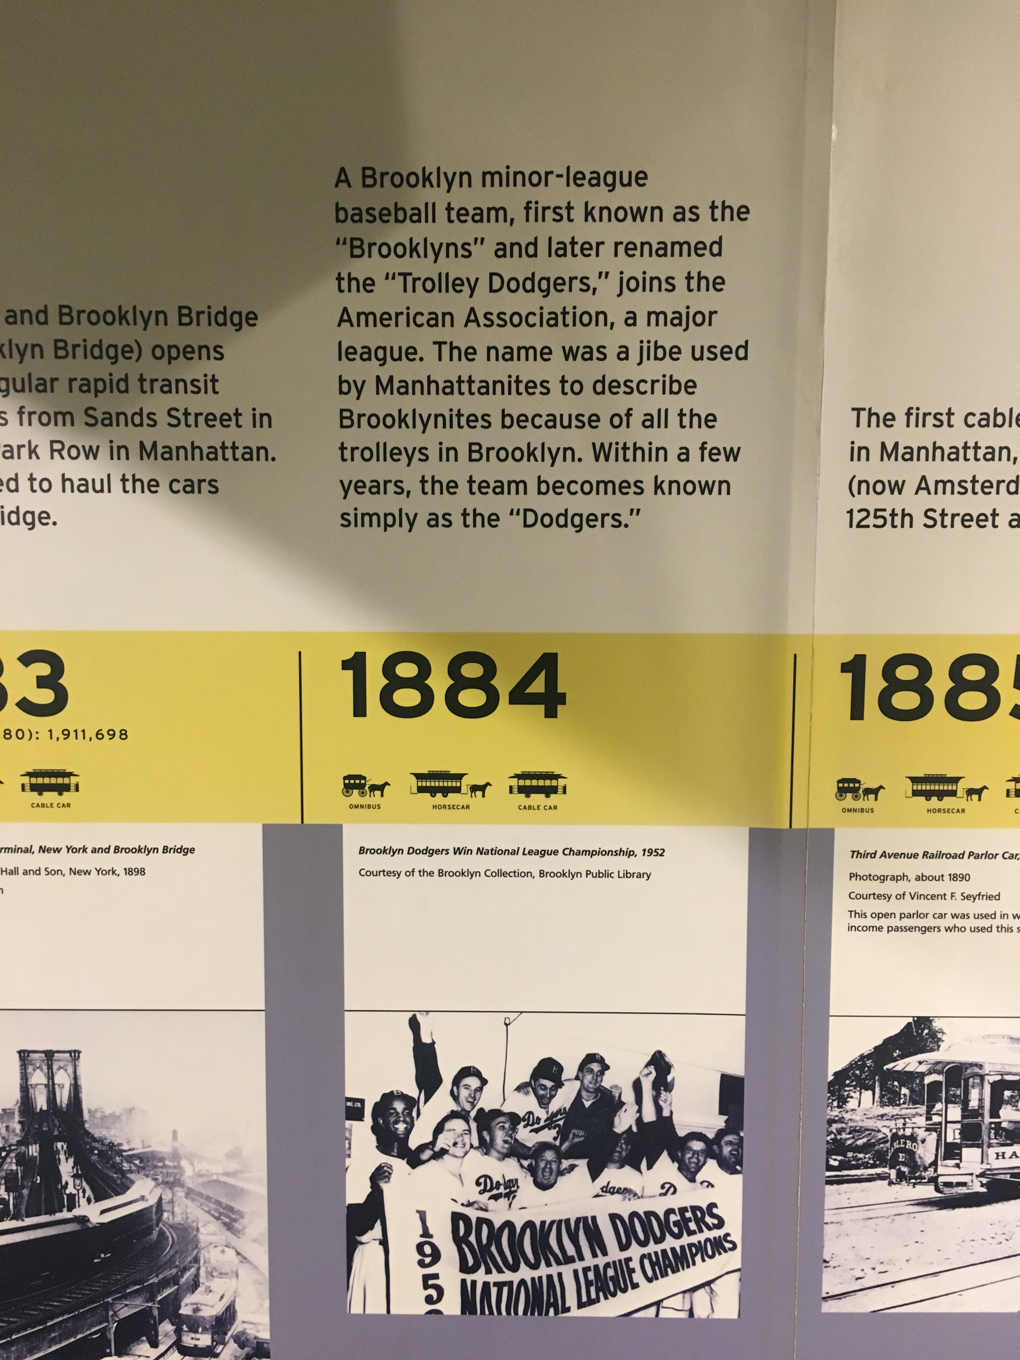 A timeline entry for the New York MTA describing how Broolynites' propensity for fare-dodging on trams meant the Brooklyn baseball team were named 'The Dodgers'